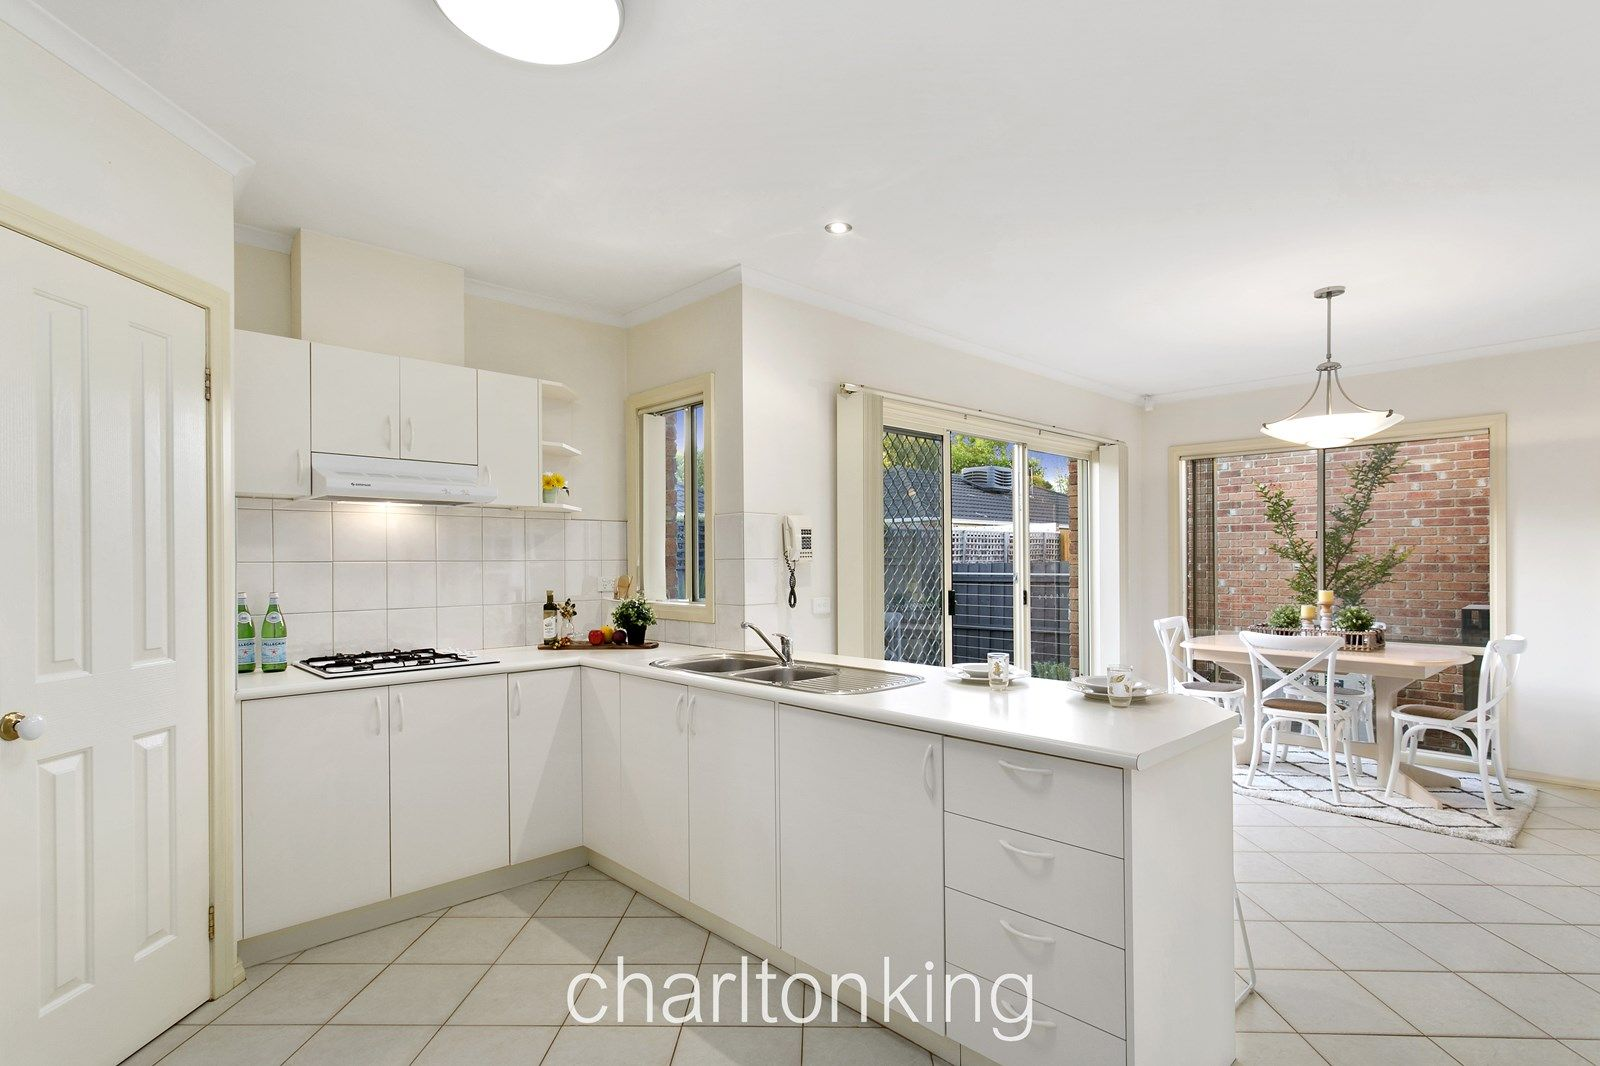 5A Farm Road, Cheltenham VIC 3192, Image 2